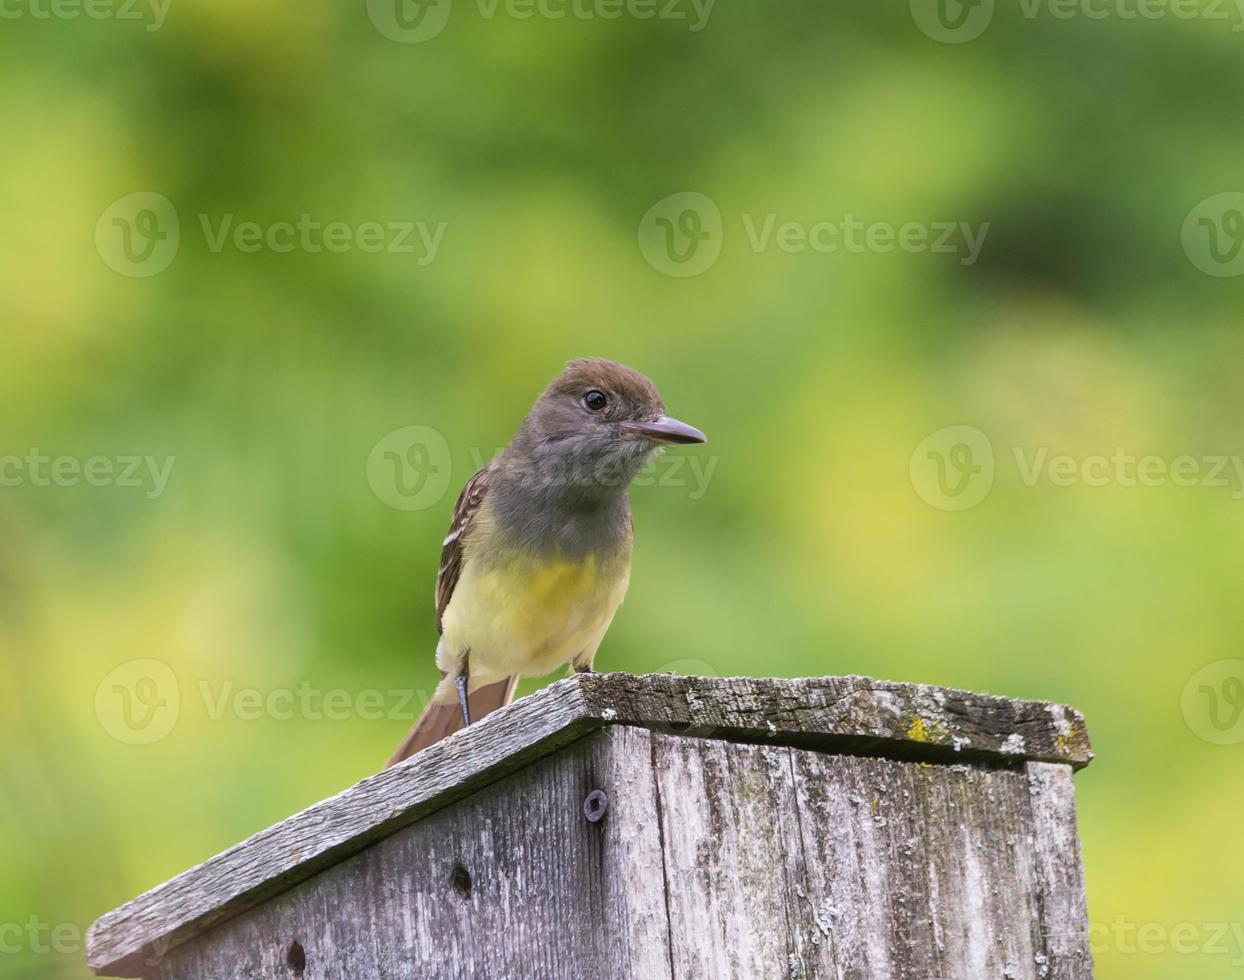 Great Crested Flycatcher photo